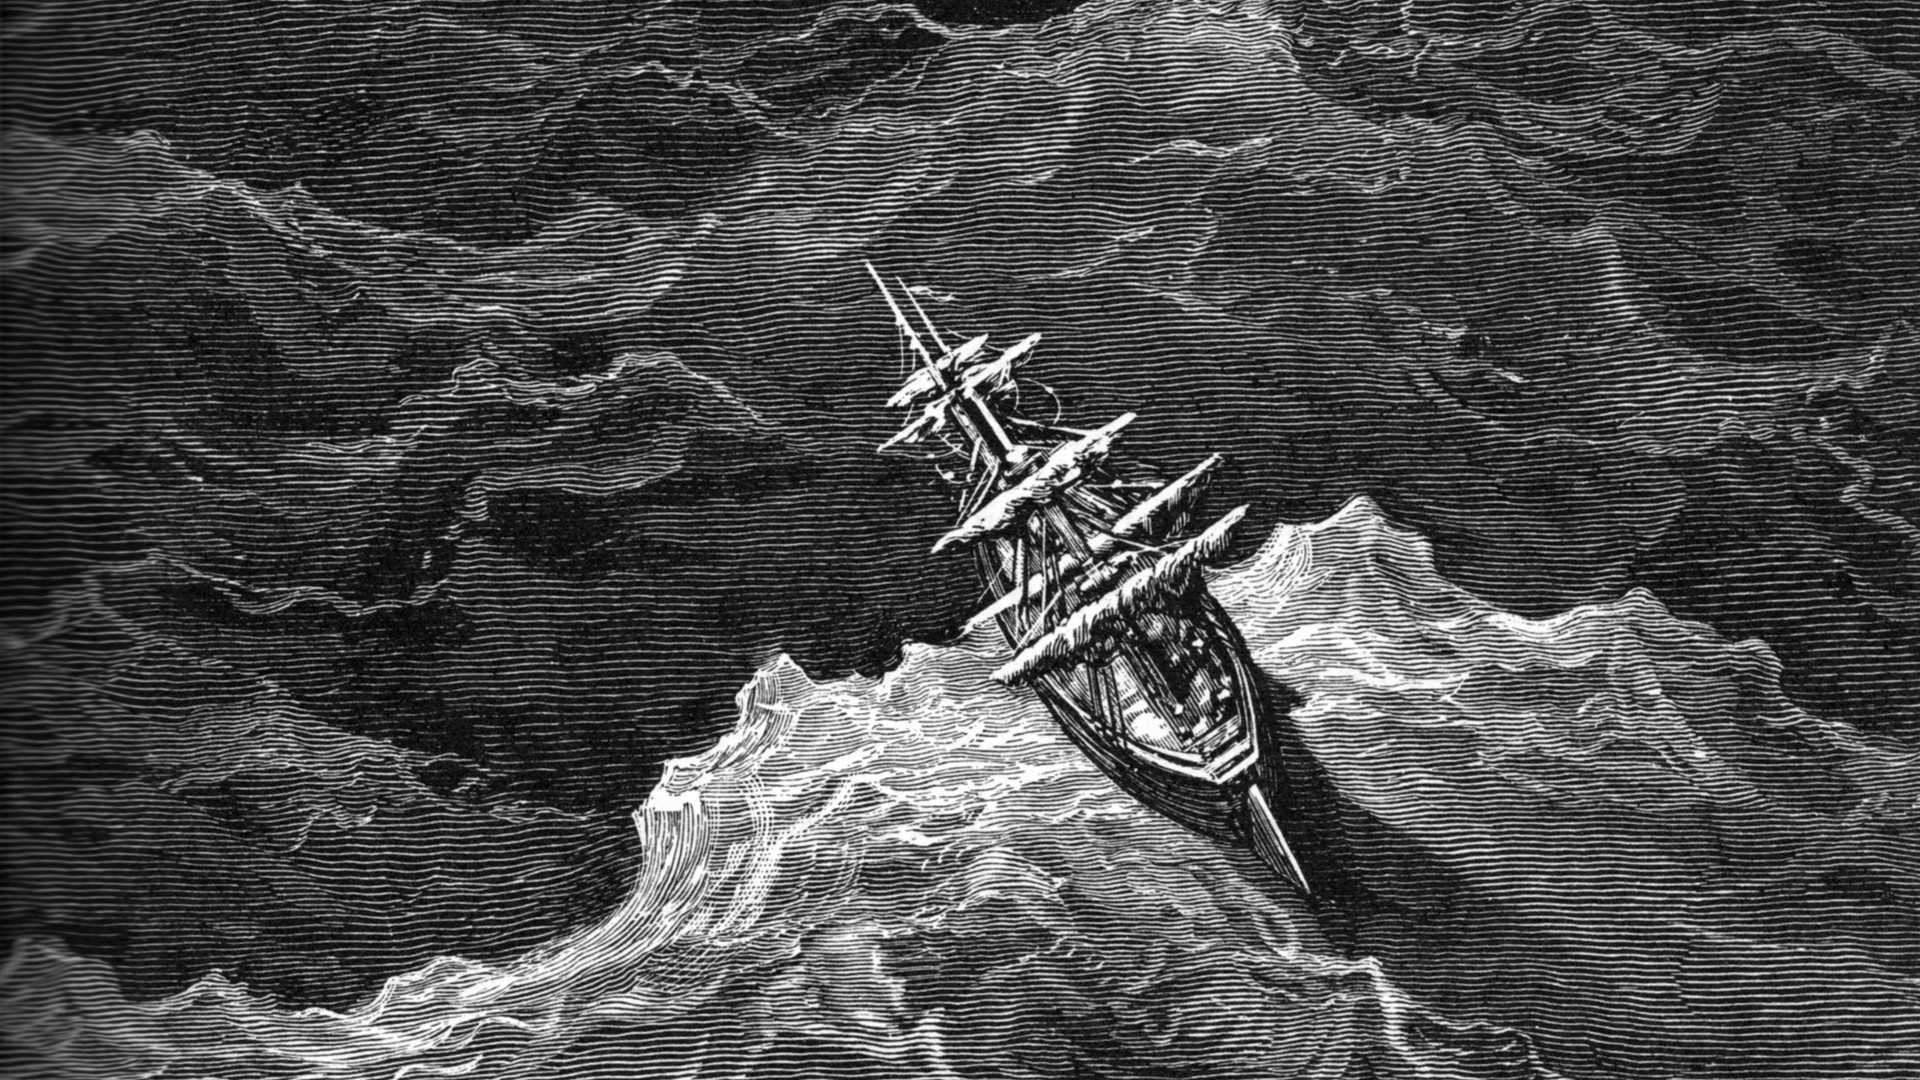 Satanic Iphone Wallpaper Gustave Dore Artwork Drawings Grayscale Sea Wallpaper